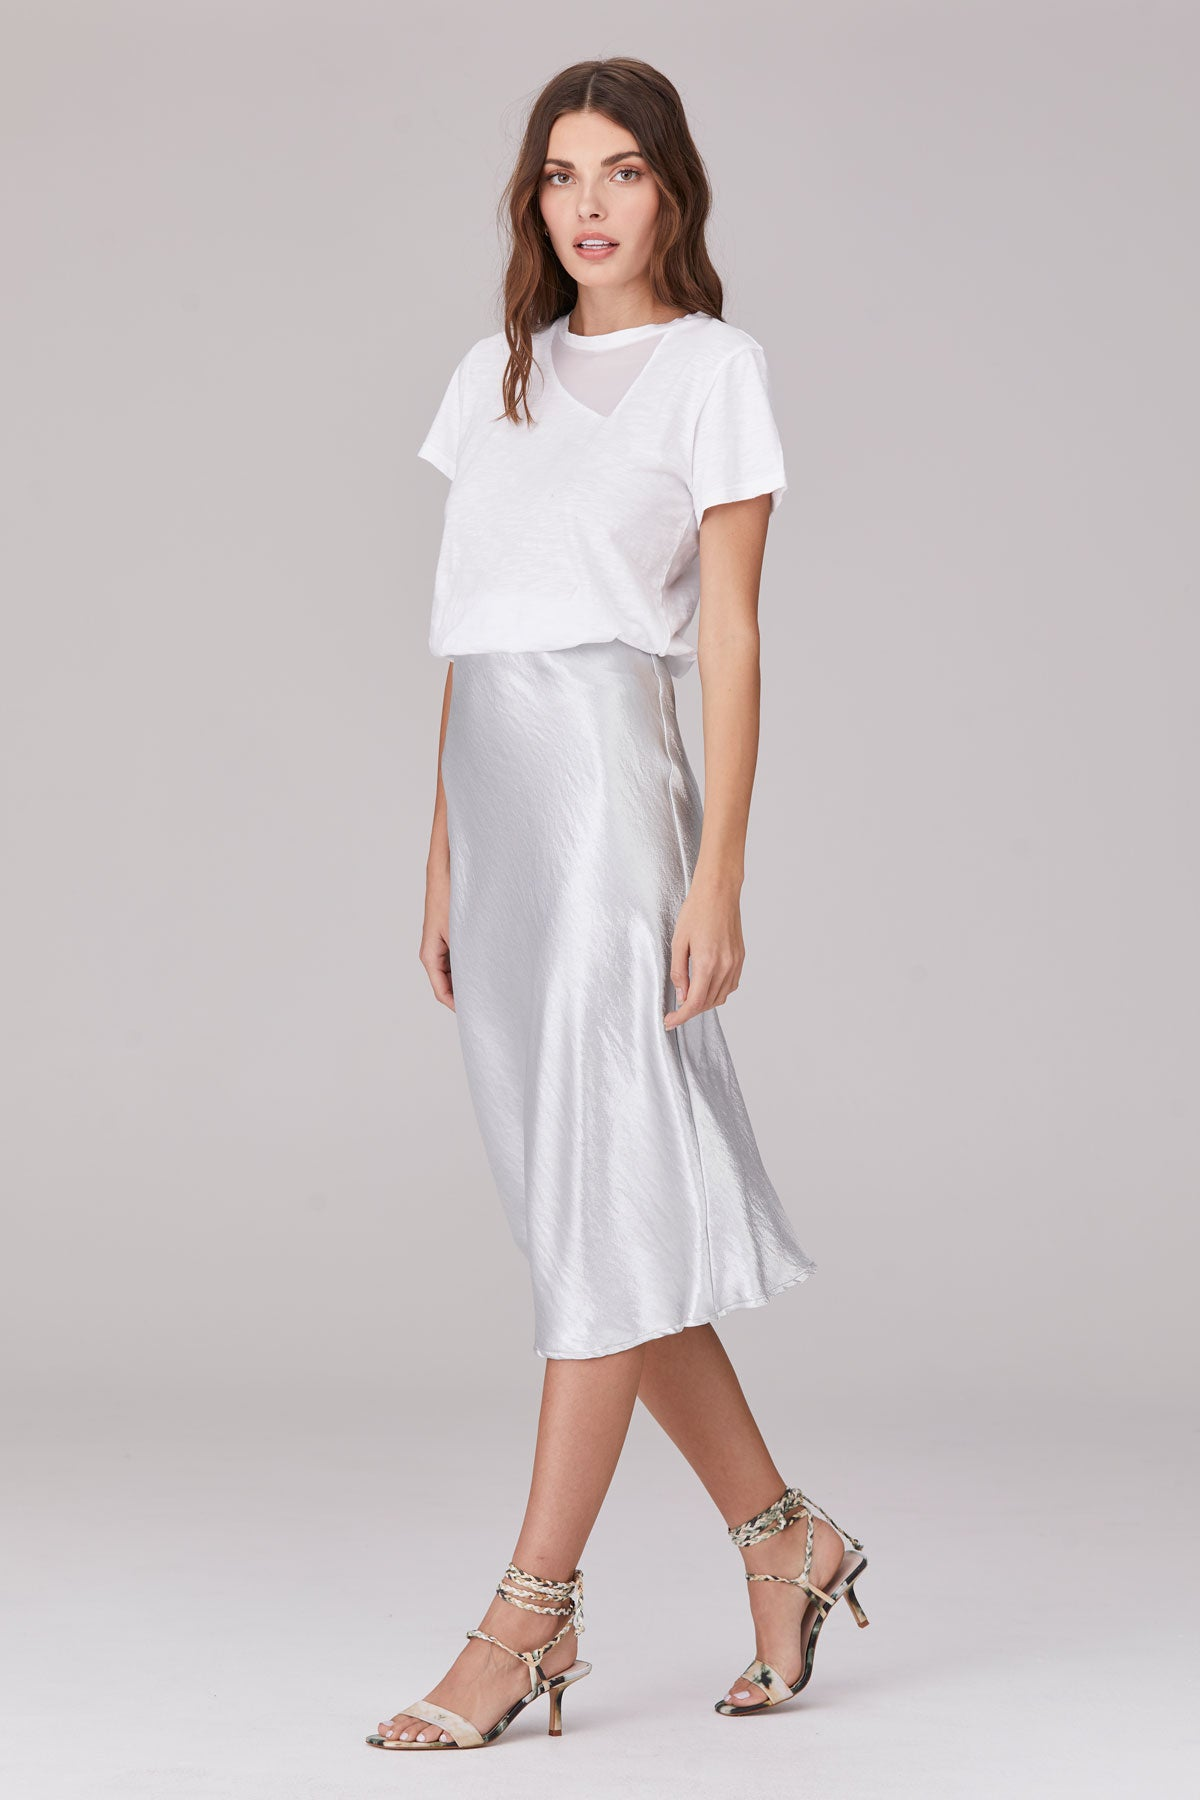 LNA Shine Bias Skirt in Silver